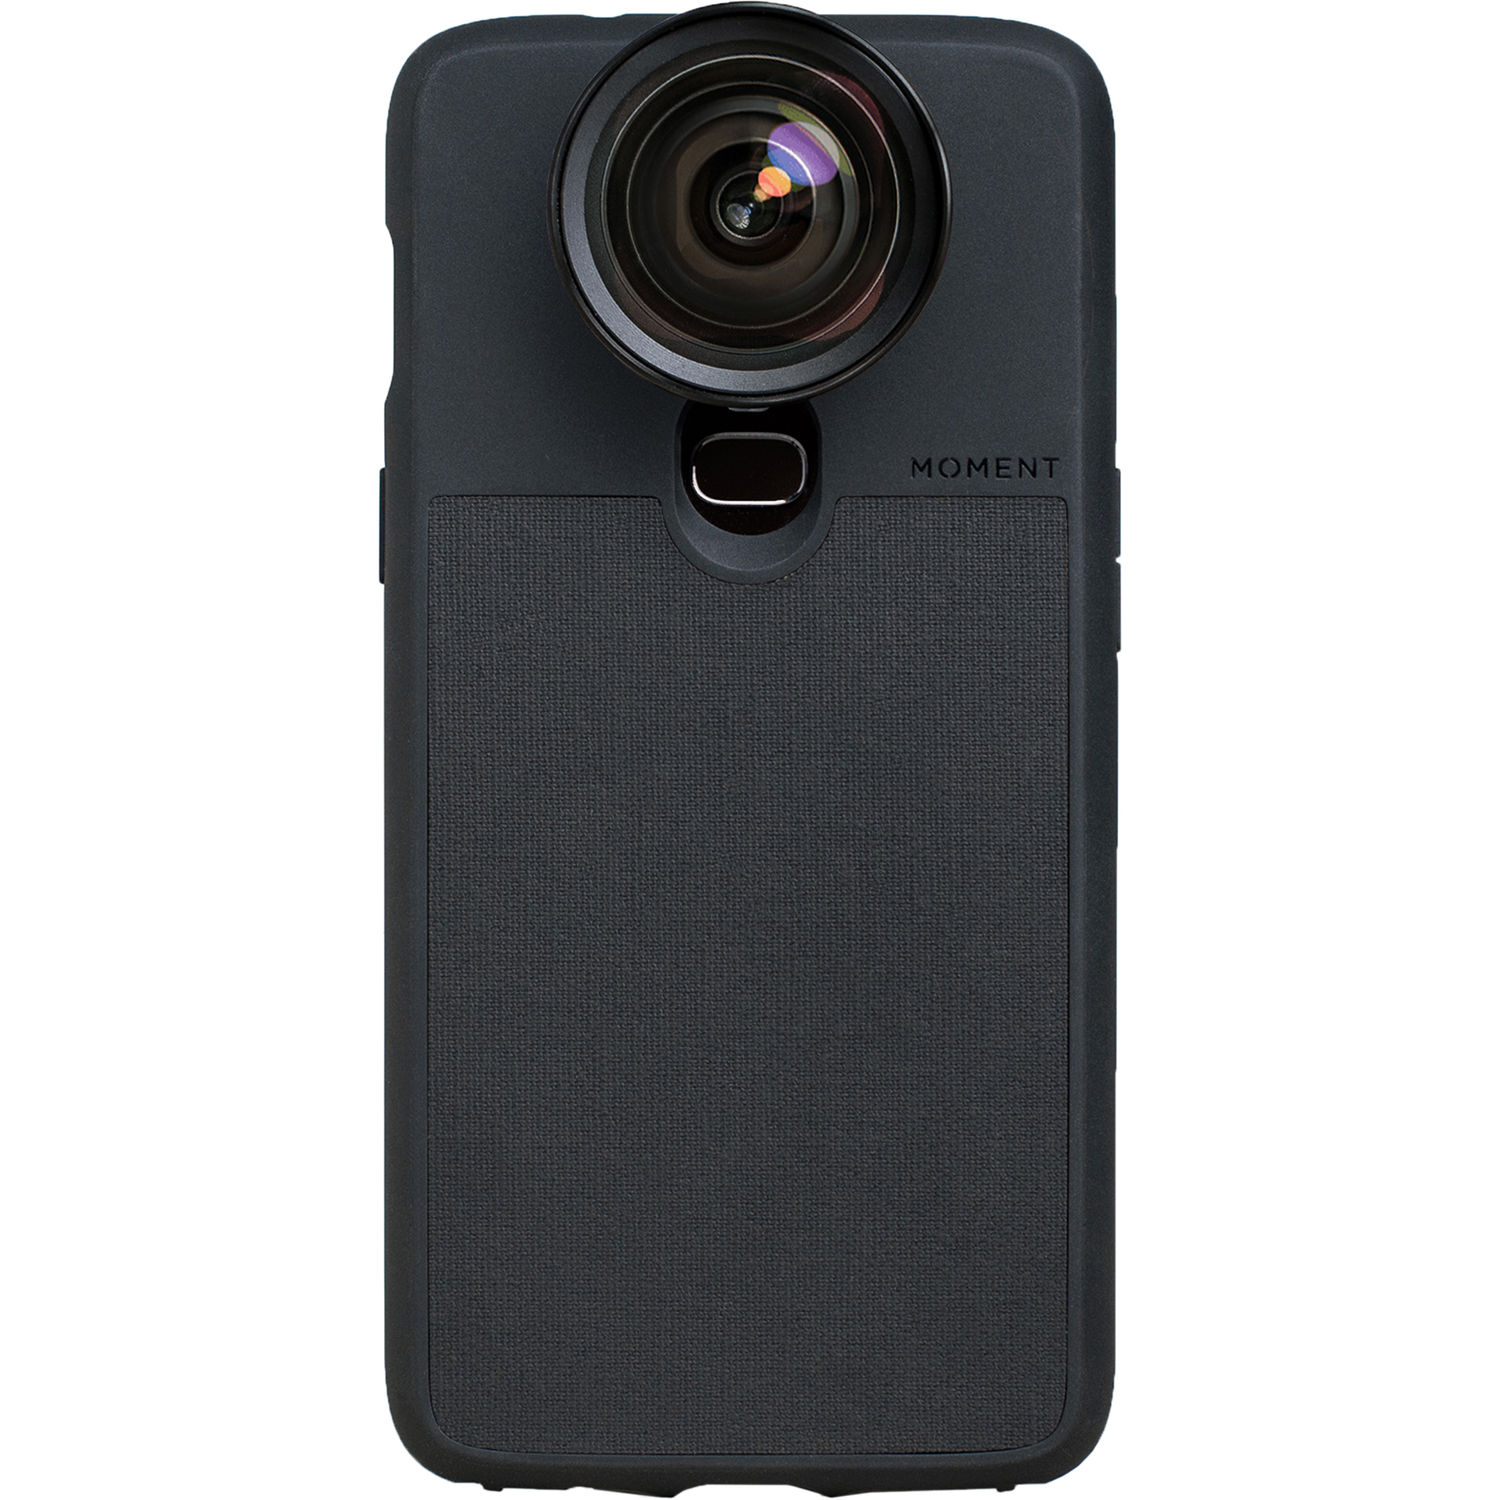 the latest 4c5e4 616d1 Moment Photo Case for the OnePlus 6 (Black Canvas)